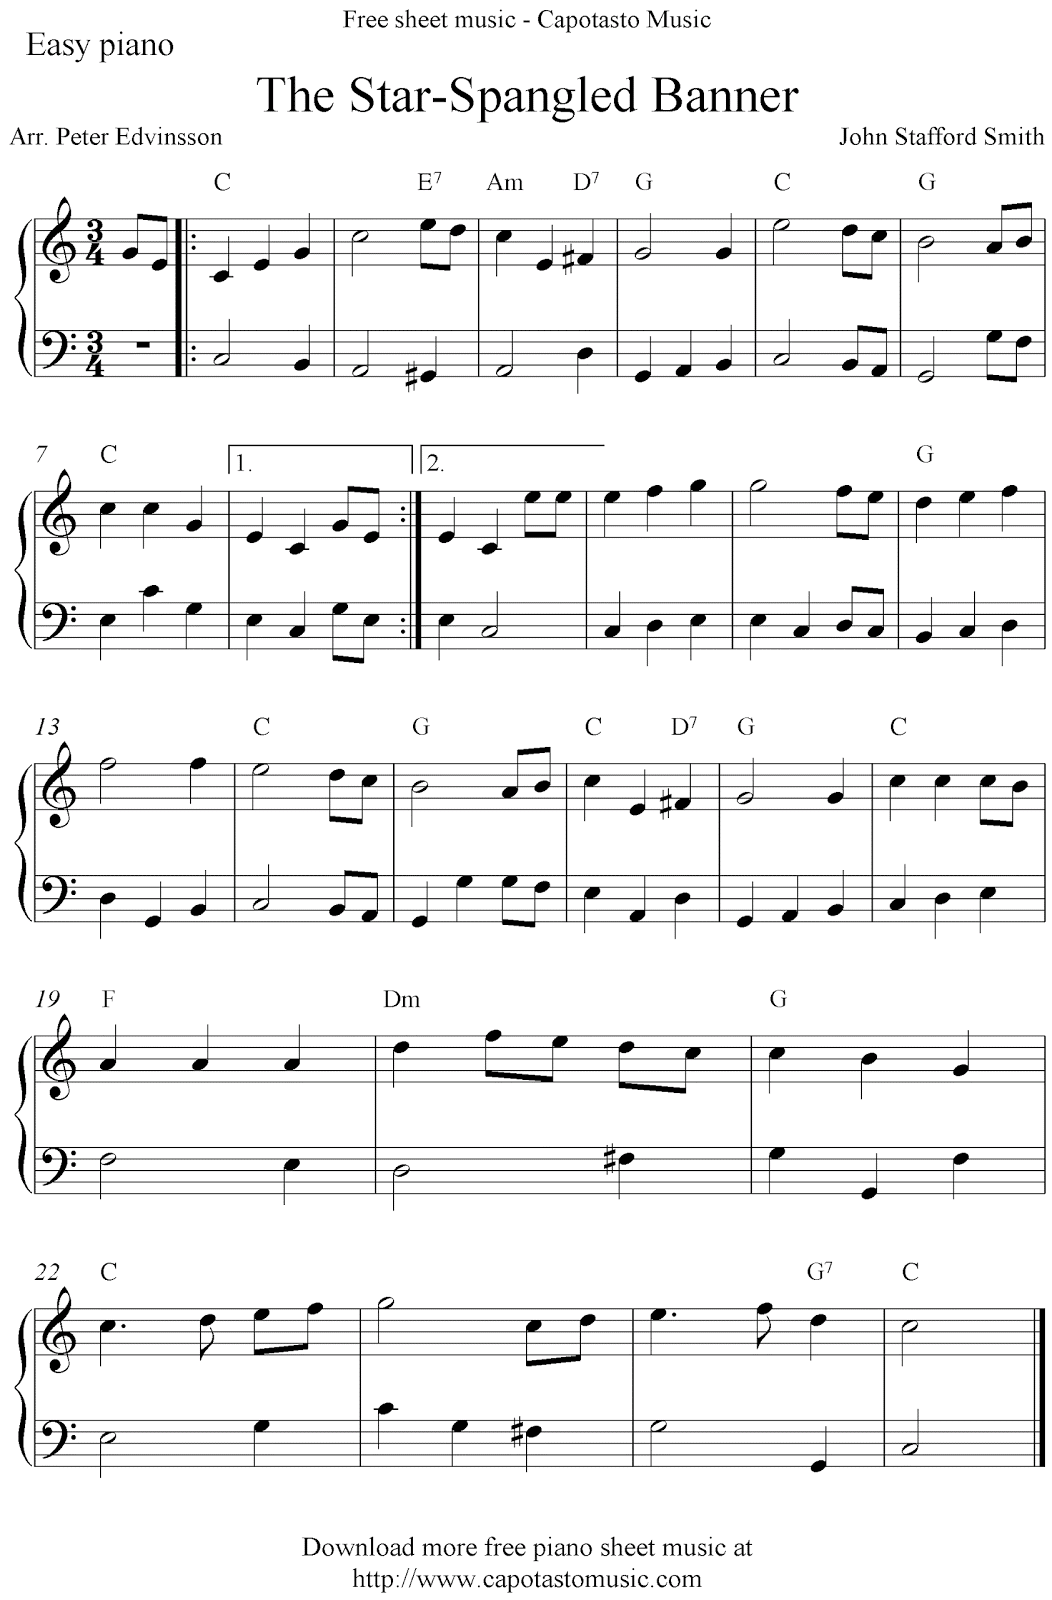 Free Printable Sheet Music Free Easy Piano Sheet Music Score The Star Spangled Banner